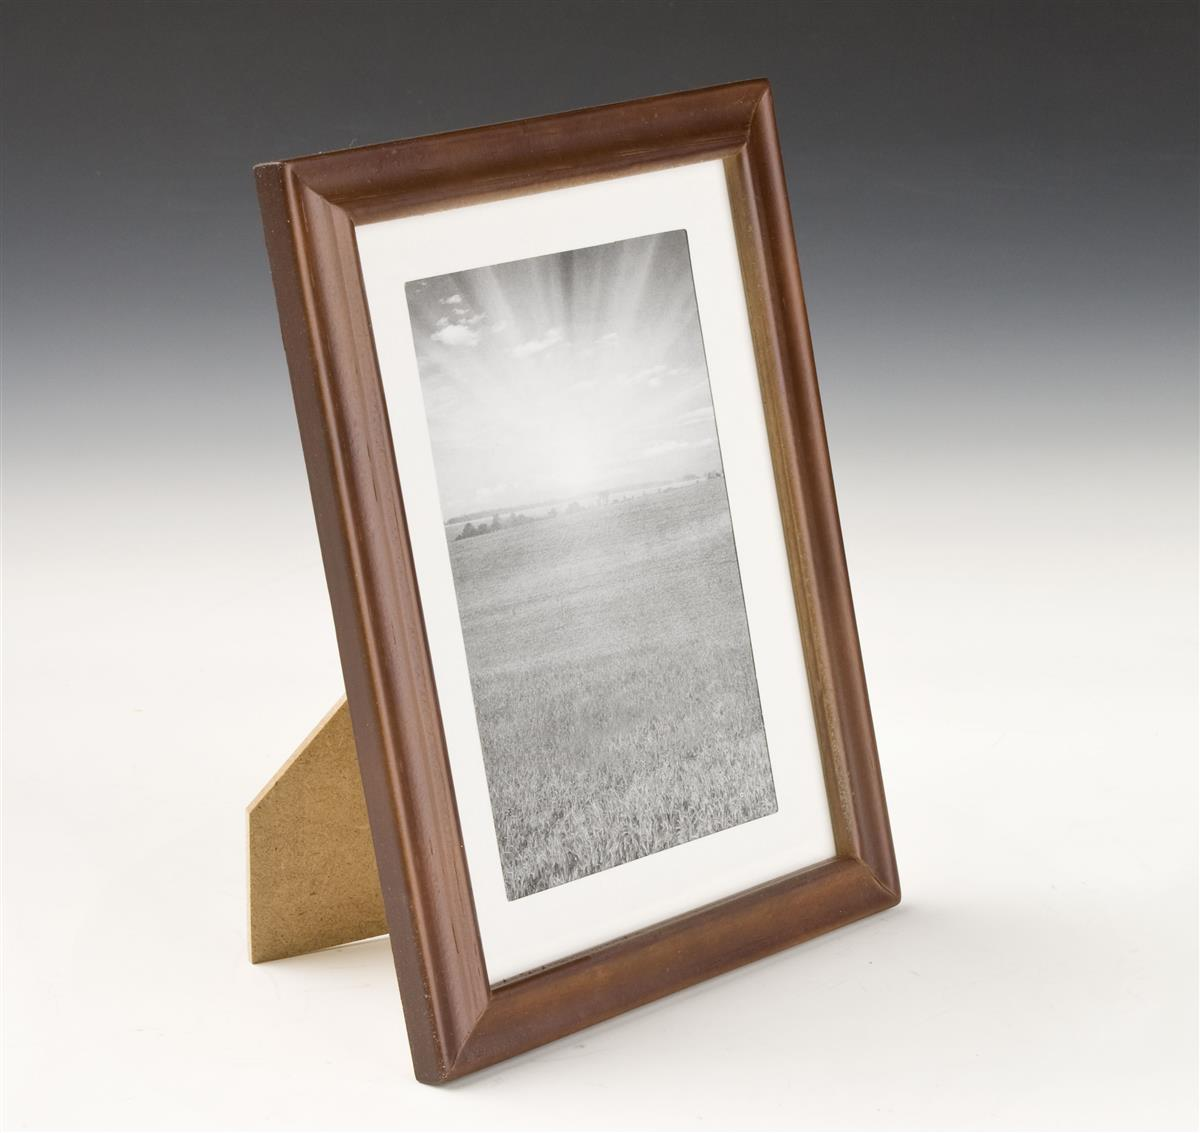 These picture frames are wood photo frames that are Cheap a frames